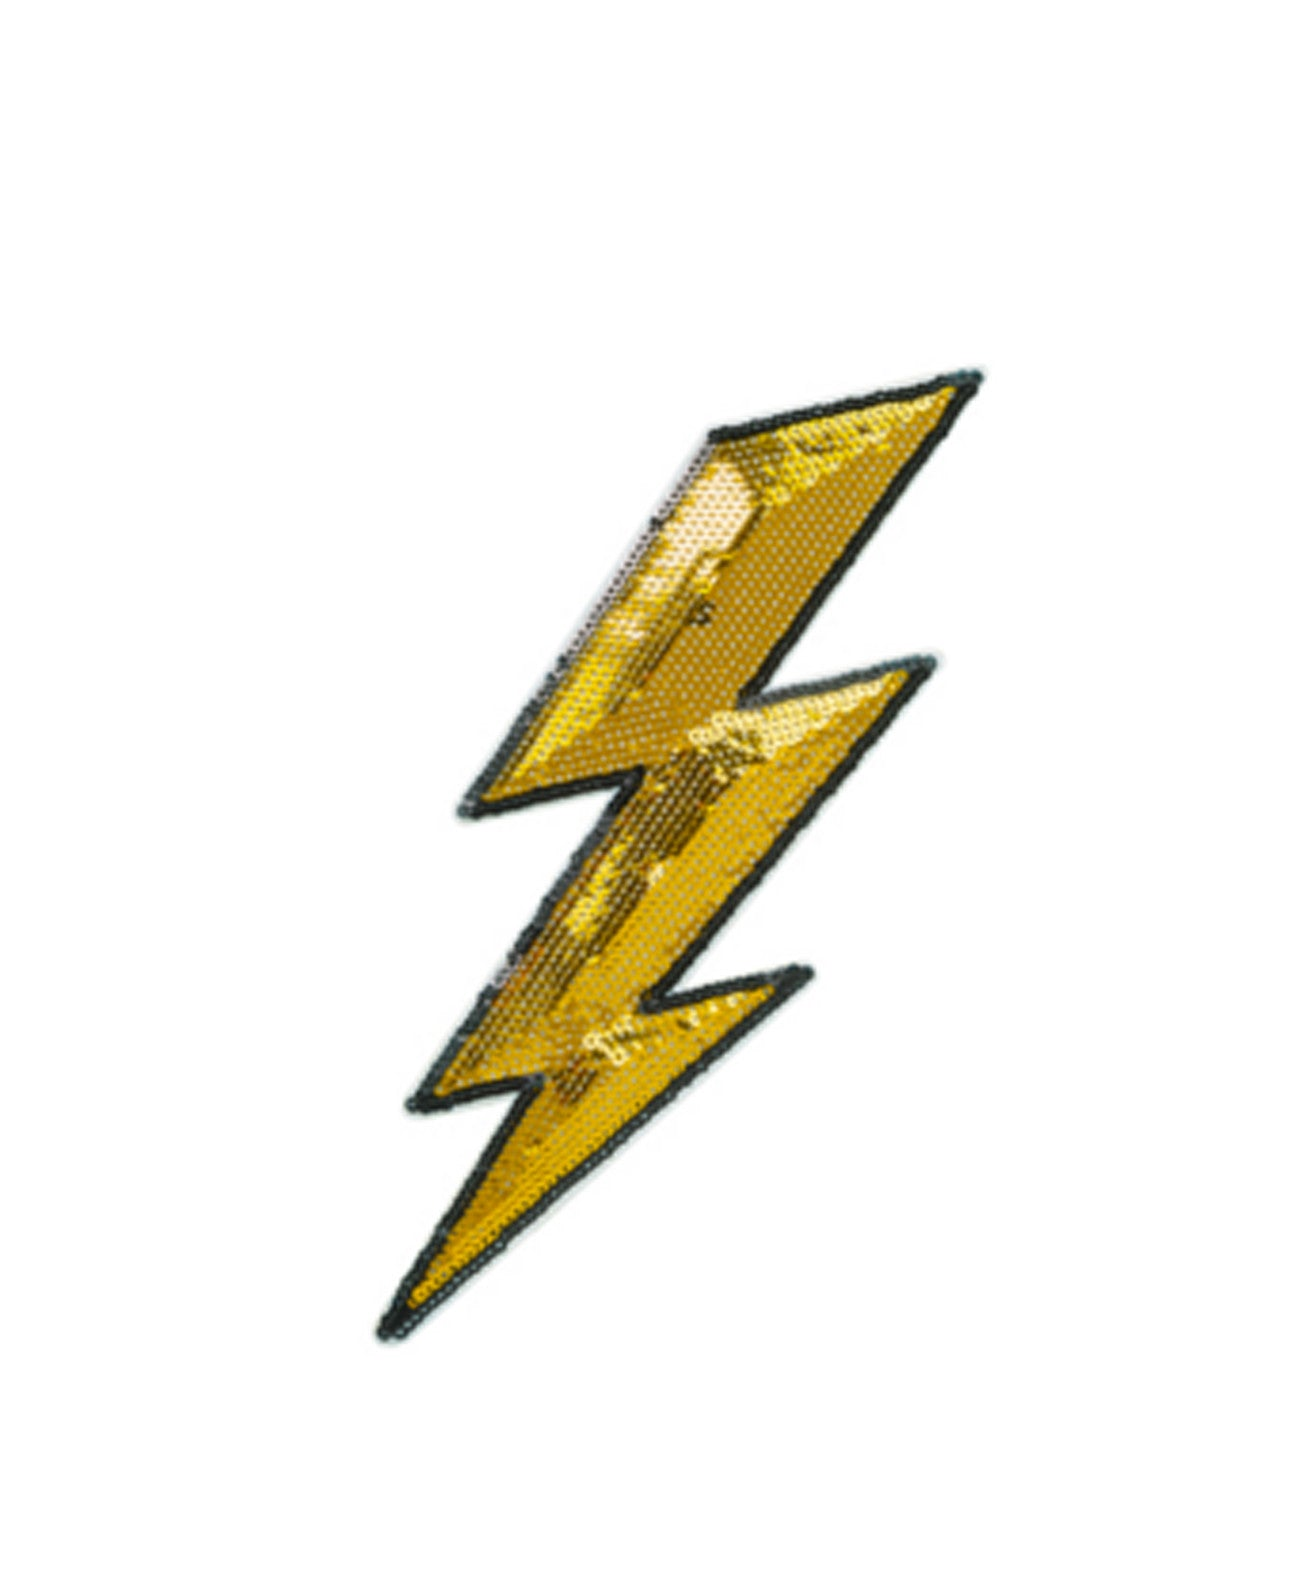 LightningPatch-6in Sequin Lightning 6 inch Sticker Patch